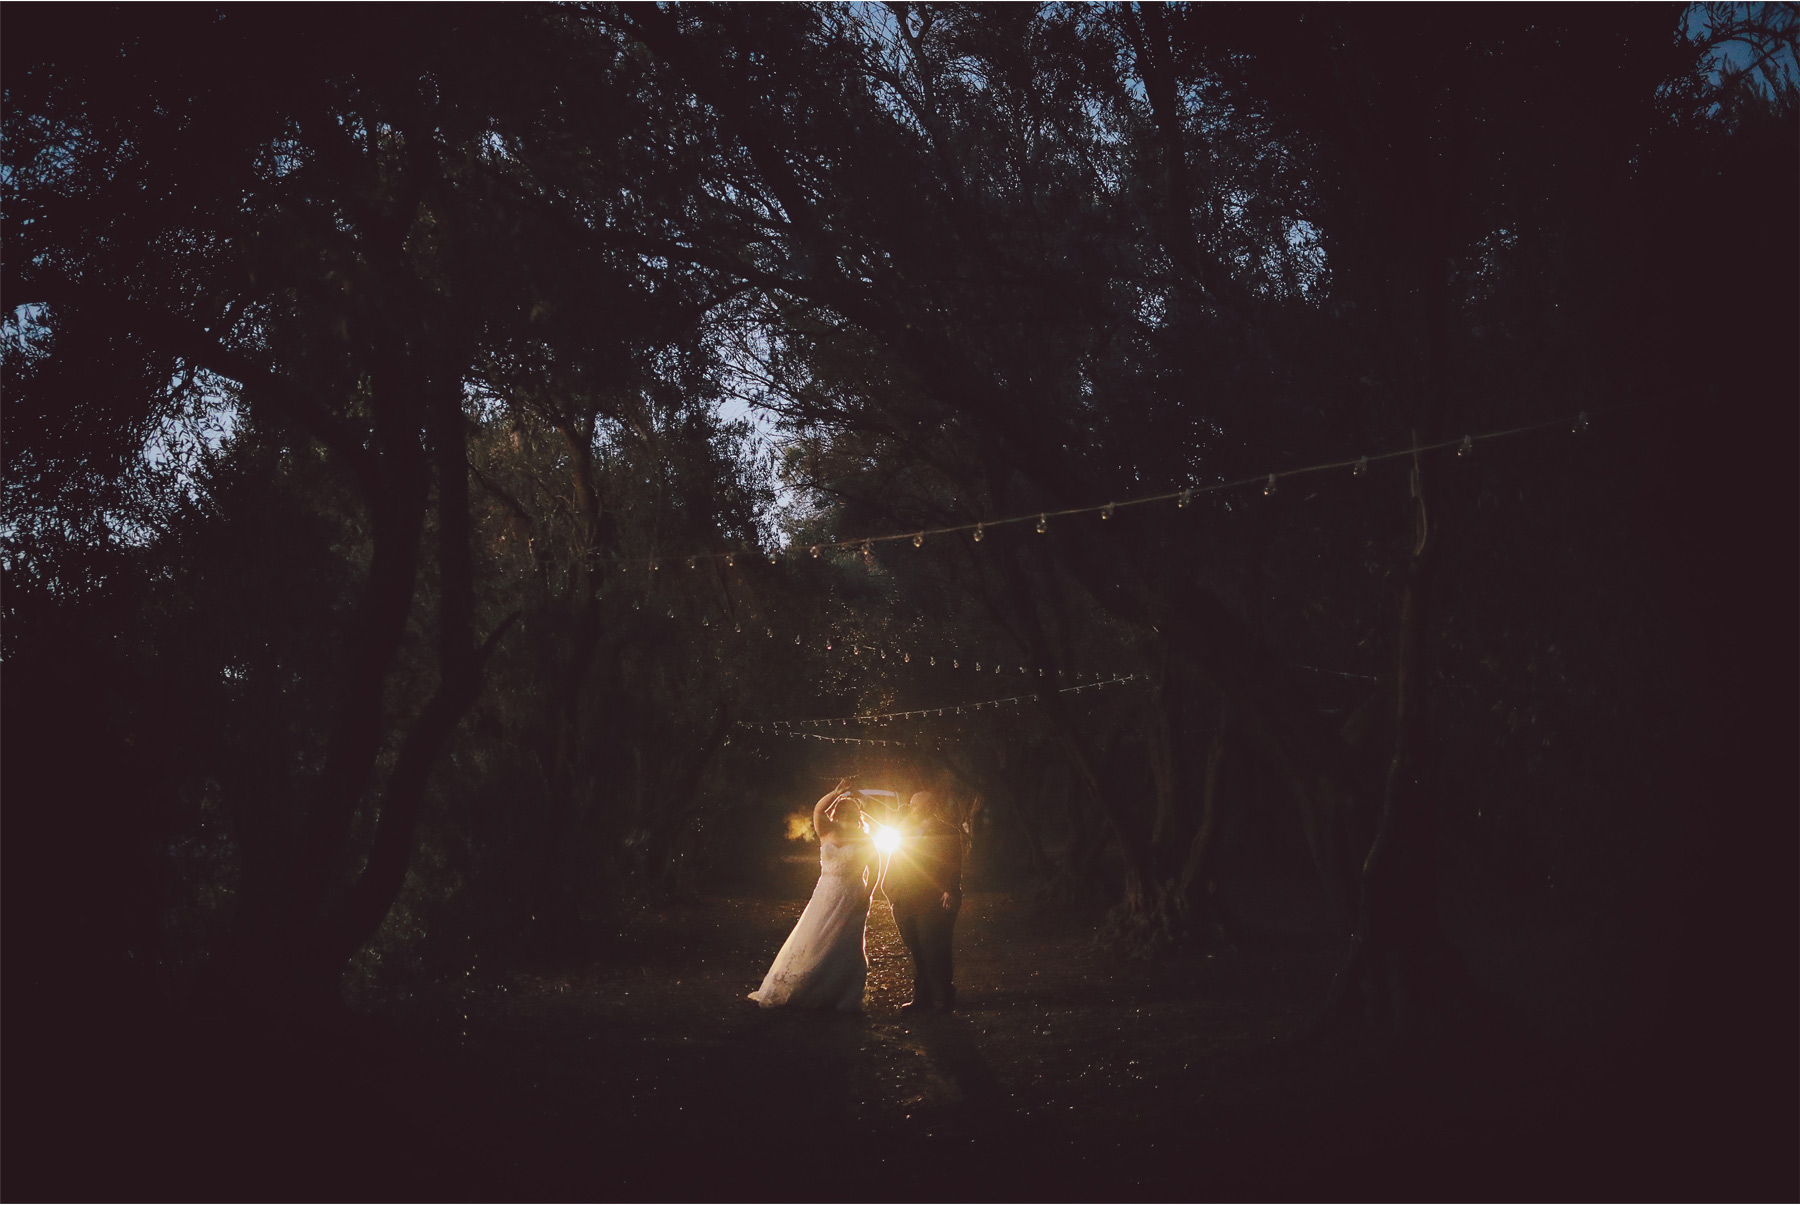 20-Los-Angeles-California-Wedding-Photographer-by-Vick-Photography-Highland-Springs-Ranch-LGBT-Night-Photography-Trees-Rebecca-and-Terri.jpg